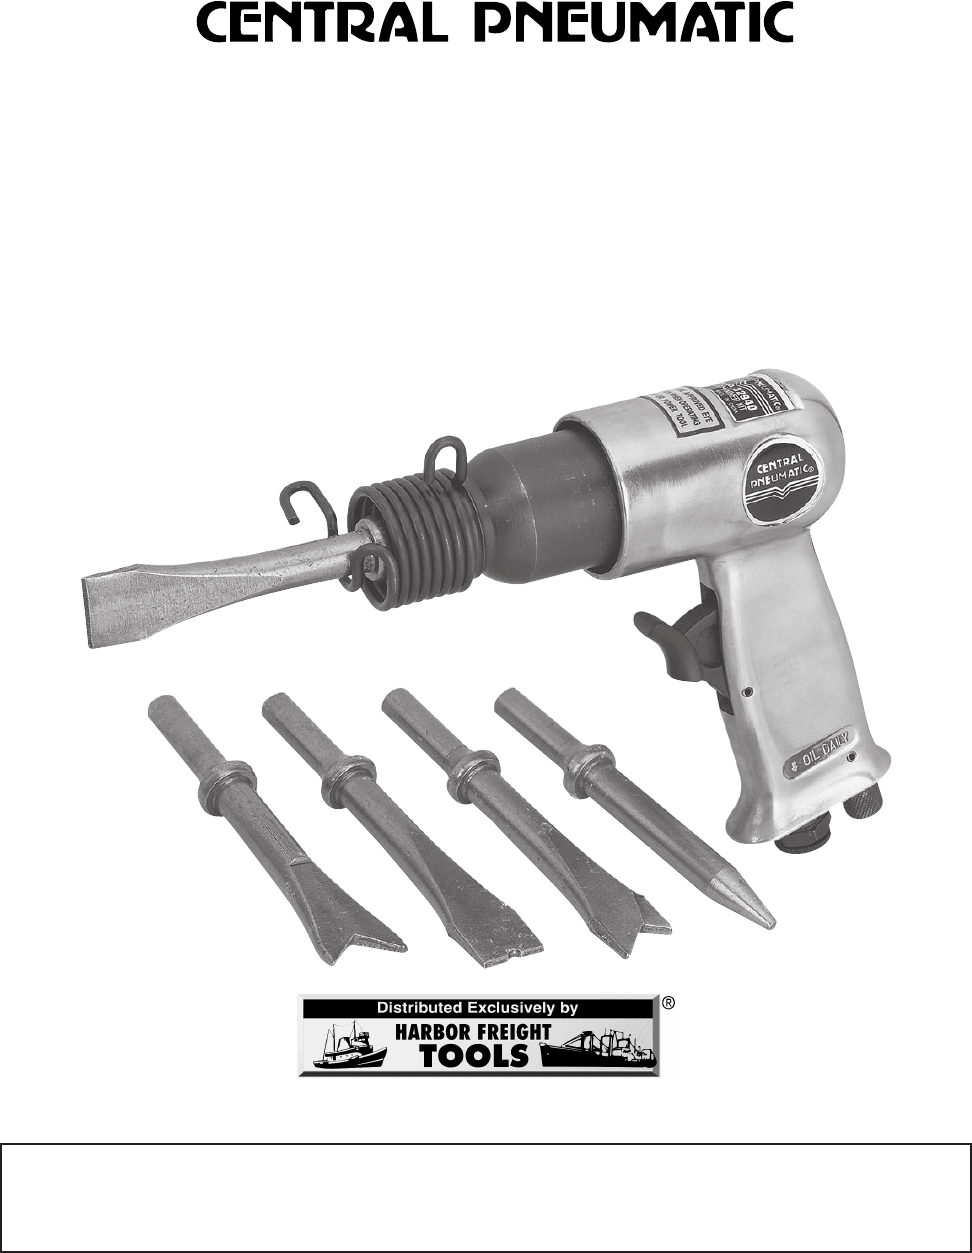 harbor freight tools power hammer 32940 user guide manualsonline com rh powertool manualsonline com Craftsman Snow Blower Parts Manuals Owner S Manual Craftsman 917